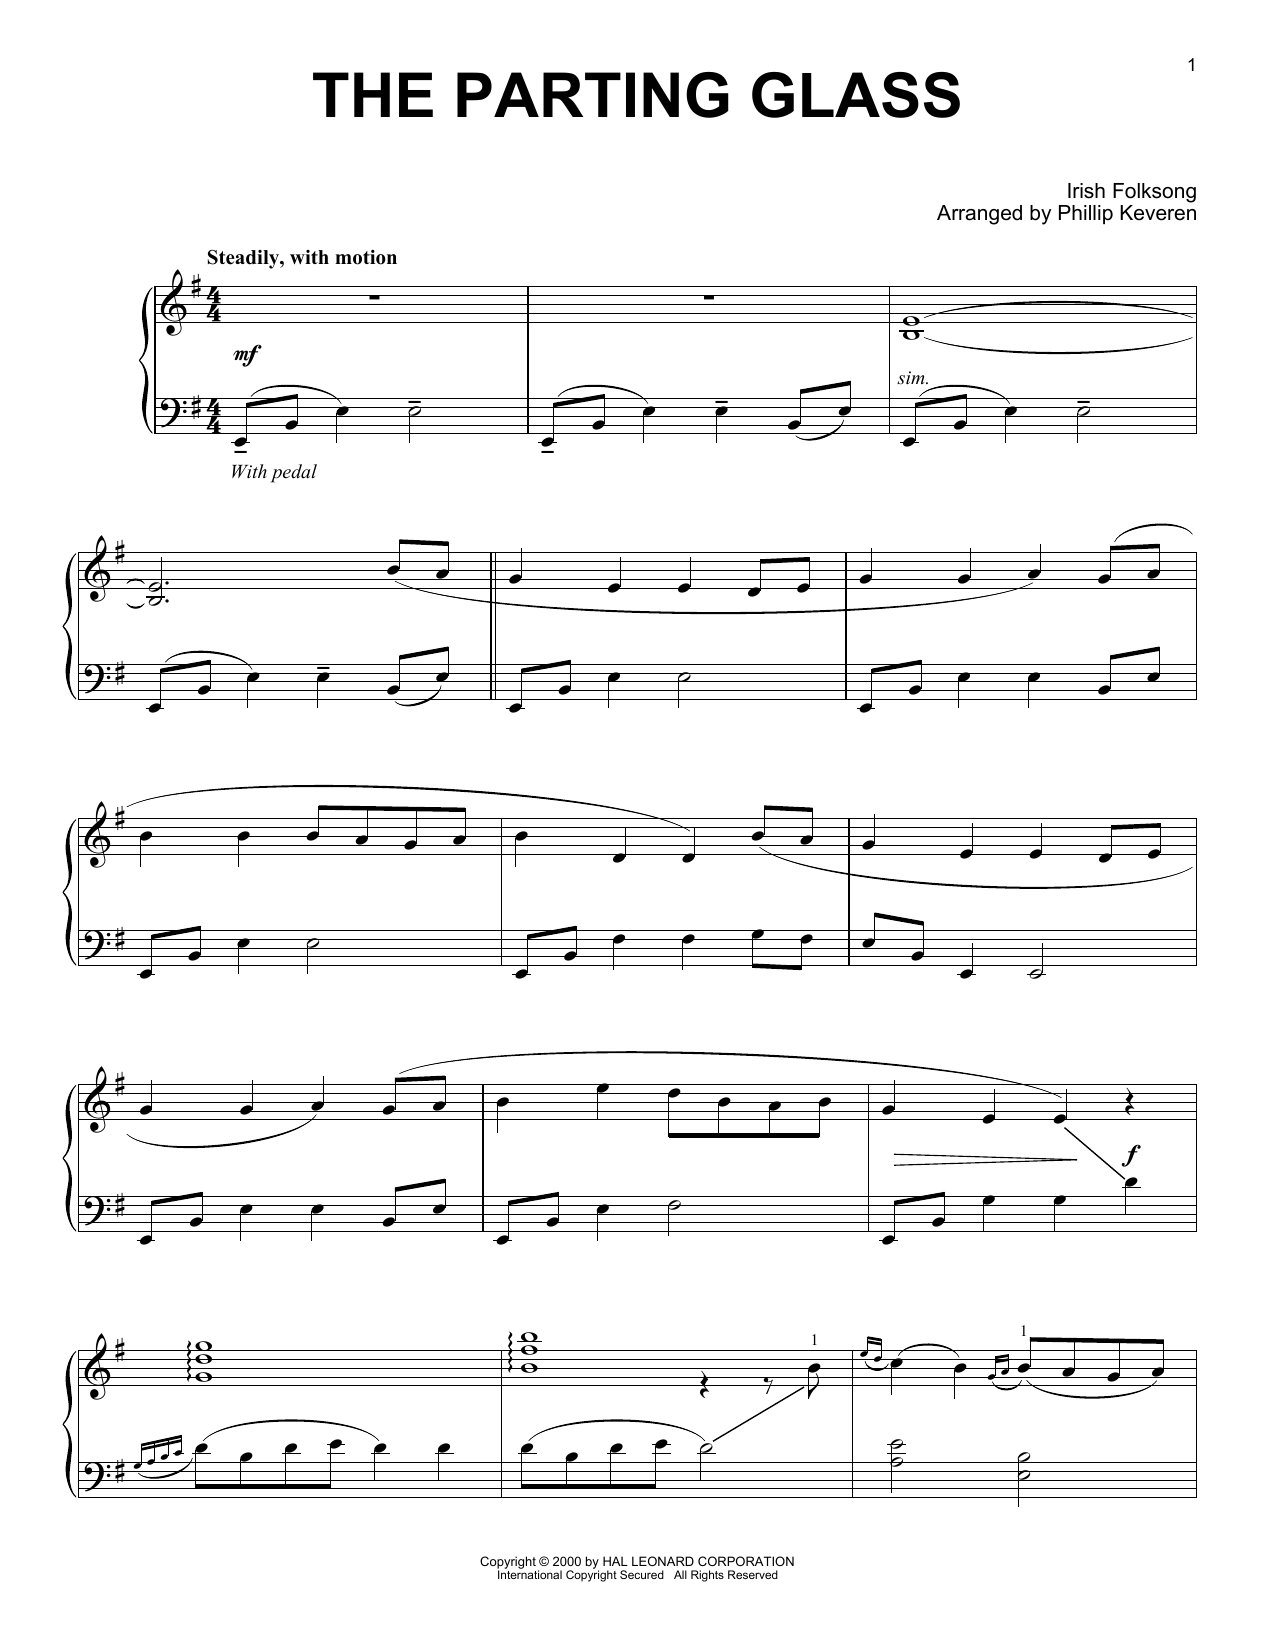 Irish Folksong The Parting Glass (arr. Phillip Keveren) sheet music notes and chords